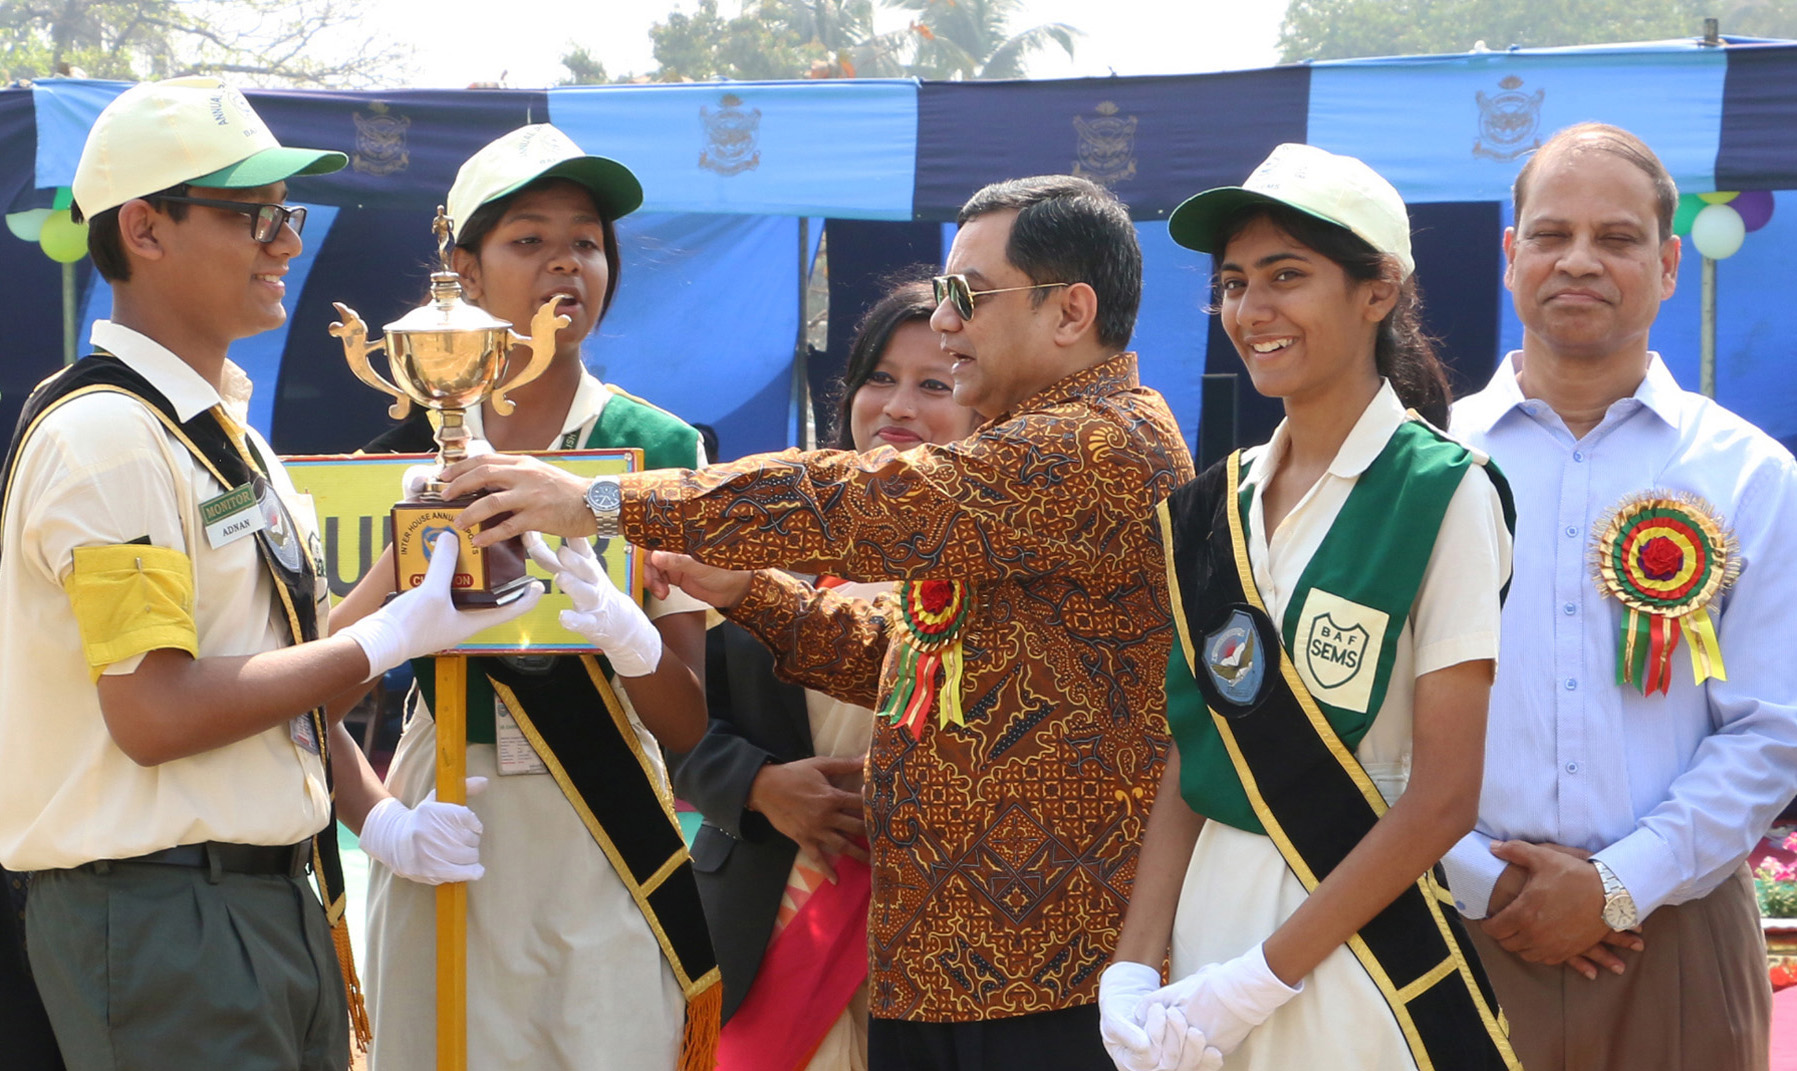 Air Officer Commanding of BAF Base Bashar Air Vice Marshal Ehsanul Gani Choudhury handing over the trophy to the winners of the Annual Sports Competition of the BAF Shaheen English Medium School (SEMS) at the School premises in the city on Saturday.